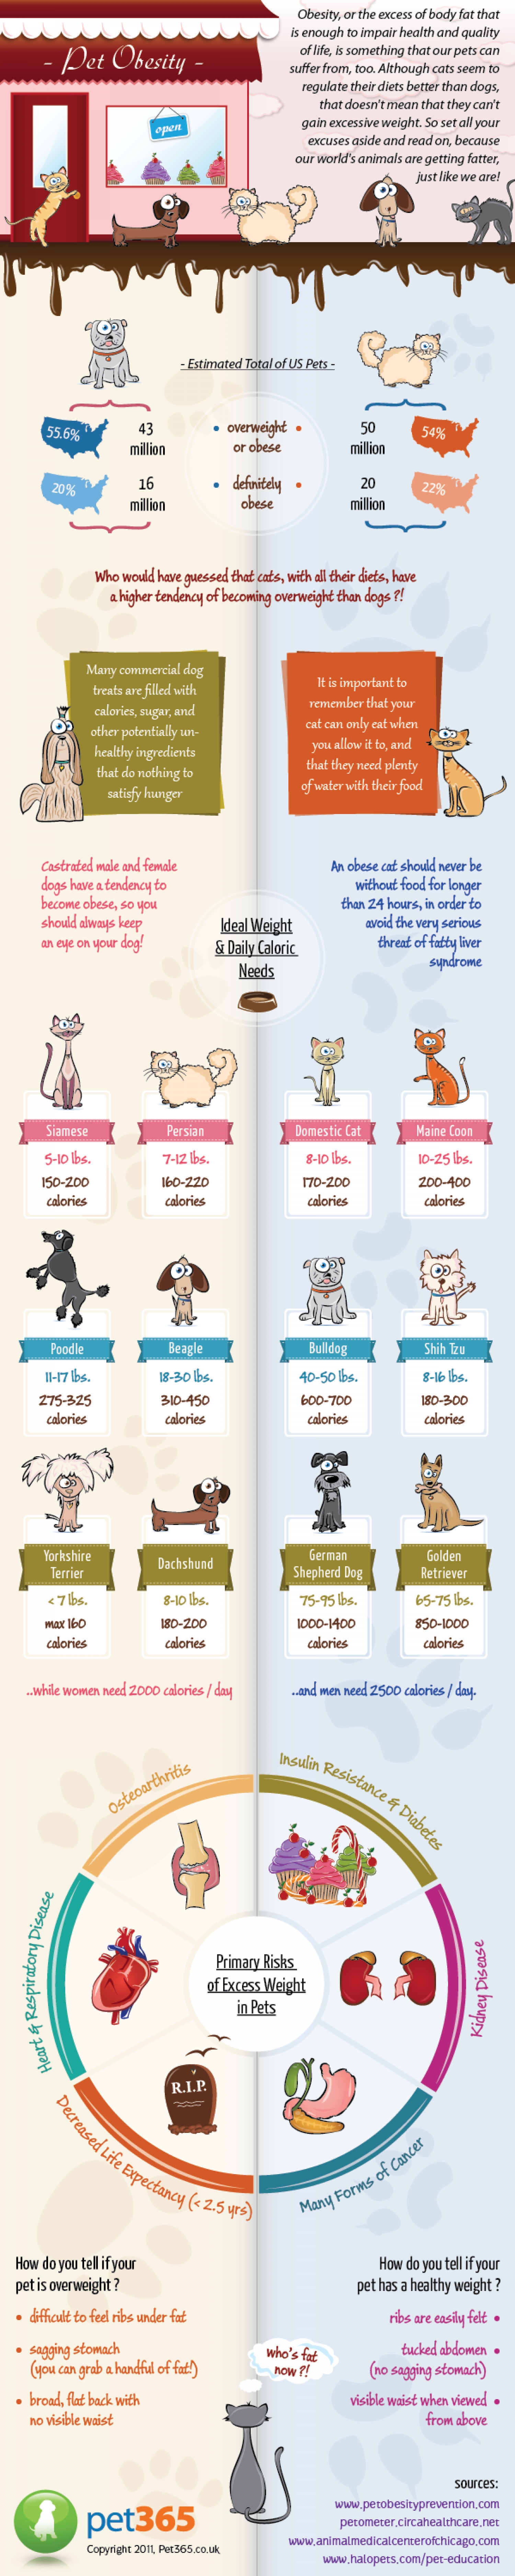 A Healthy Pet is a Safer Pet Infographic